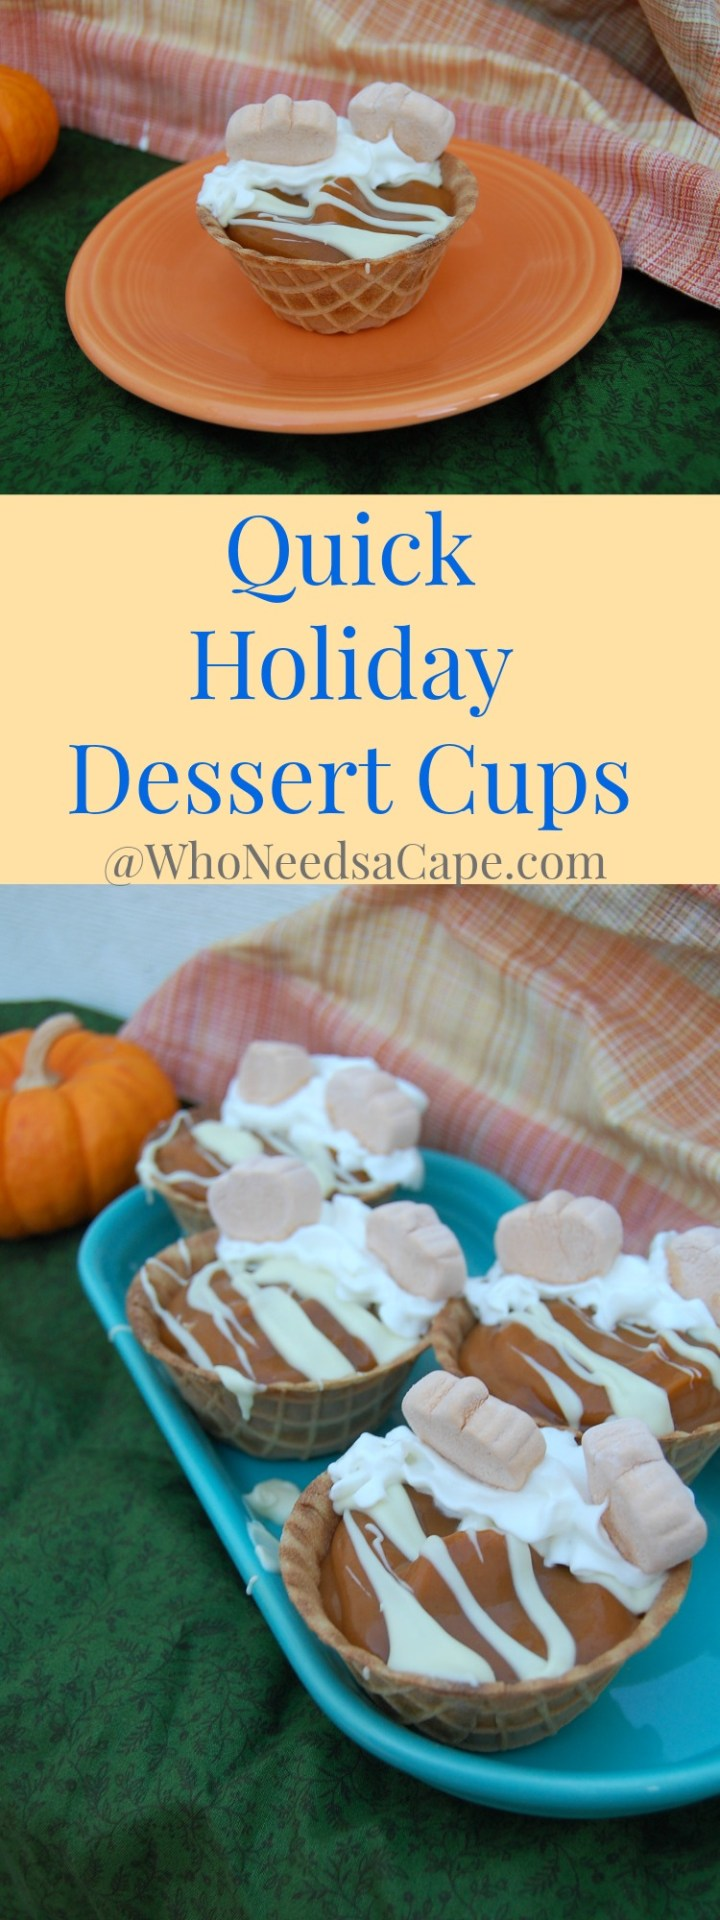 Quick Holiday Dessert Cups - perfect for an easy tasty dessert